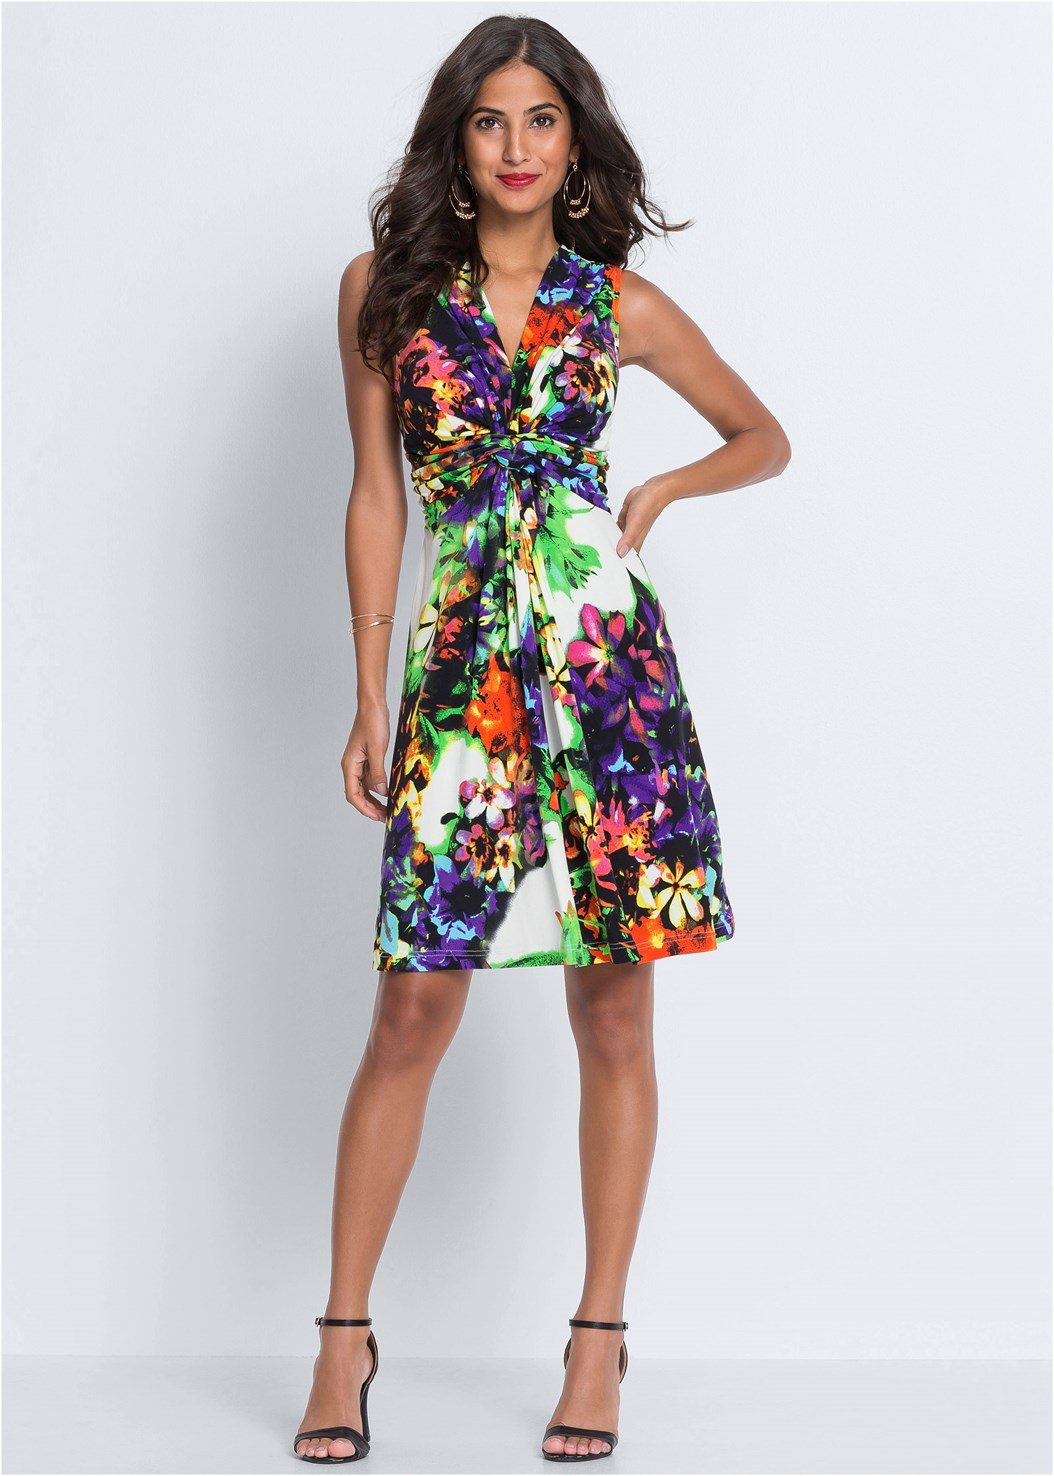 Floral Print Tie Back Dress,Push Up Bra Buy 2 For $40,Crisscross Strappy Heel